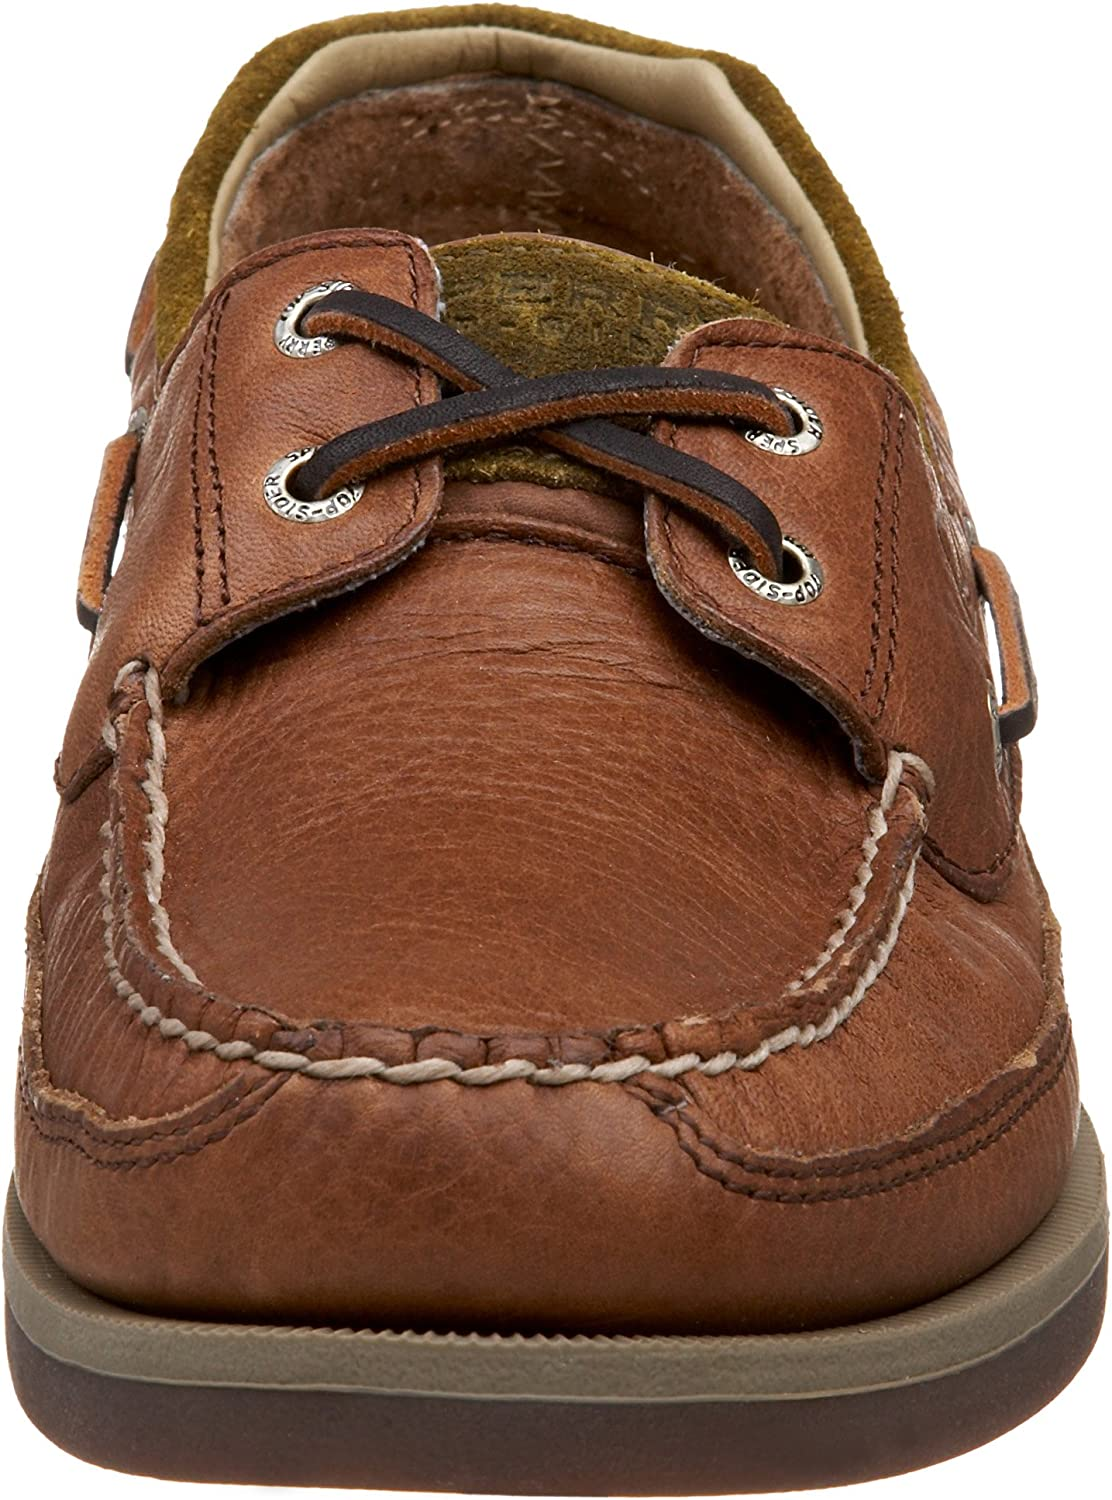 Sperry Mens Mako 2-Eye Boat Shoes